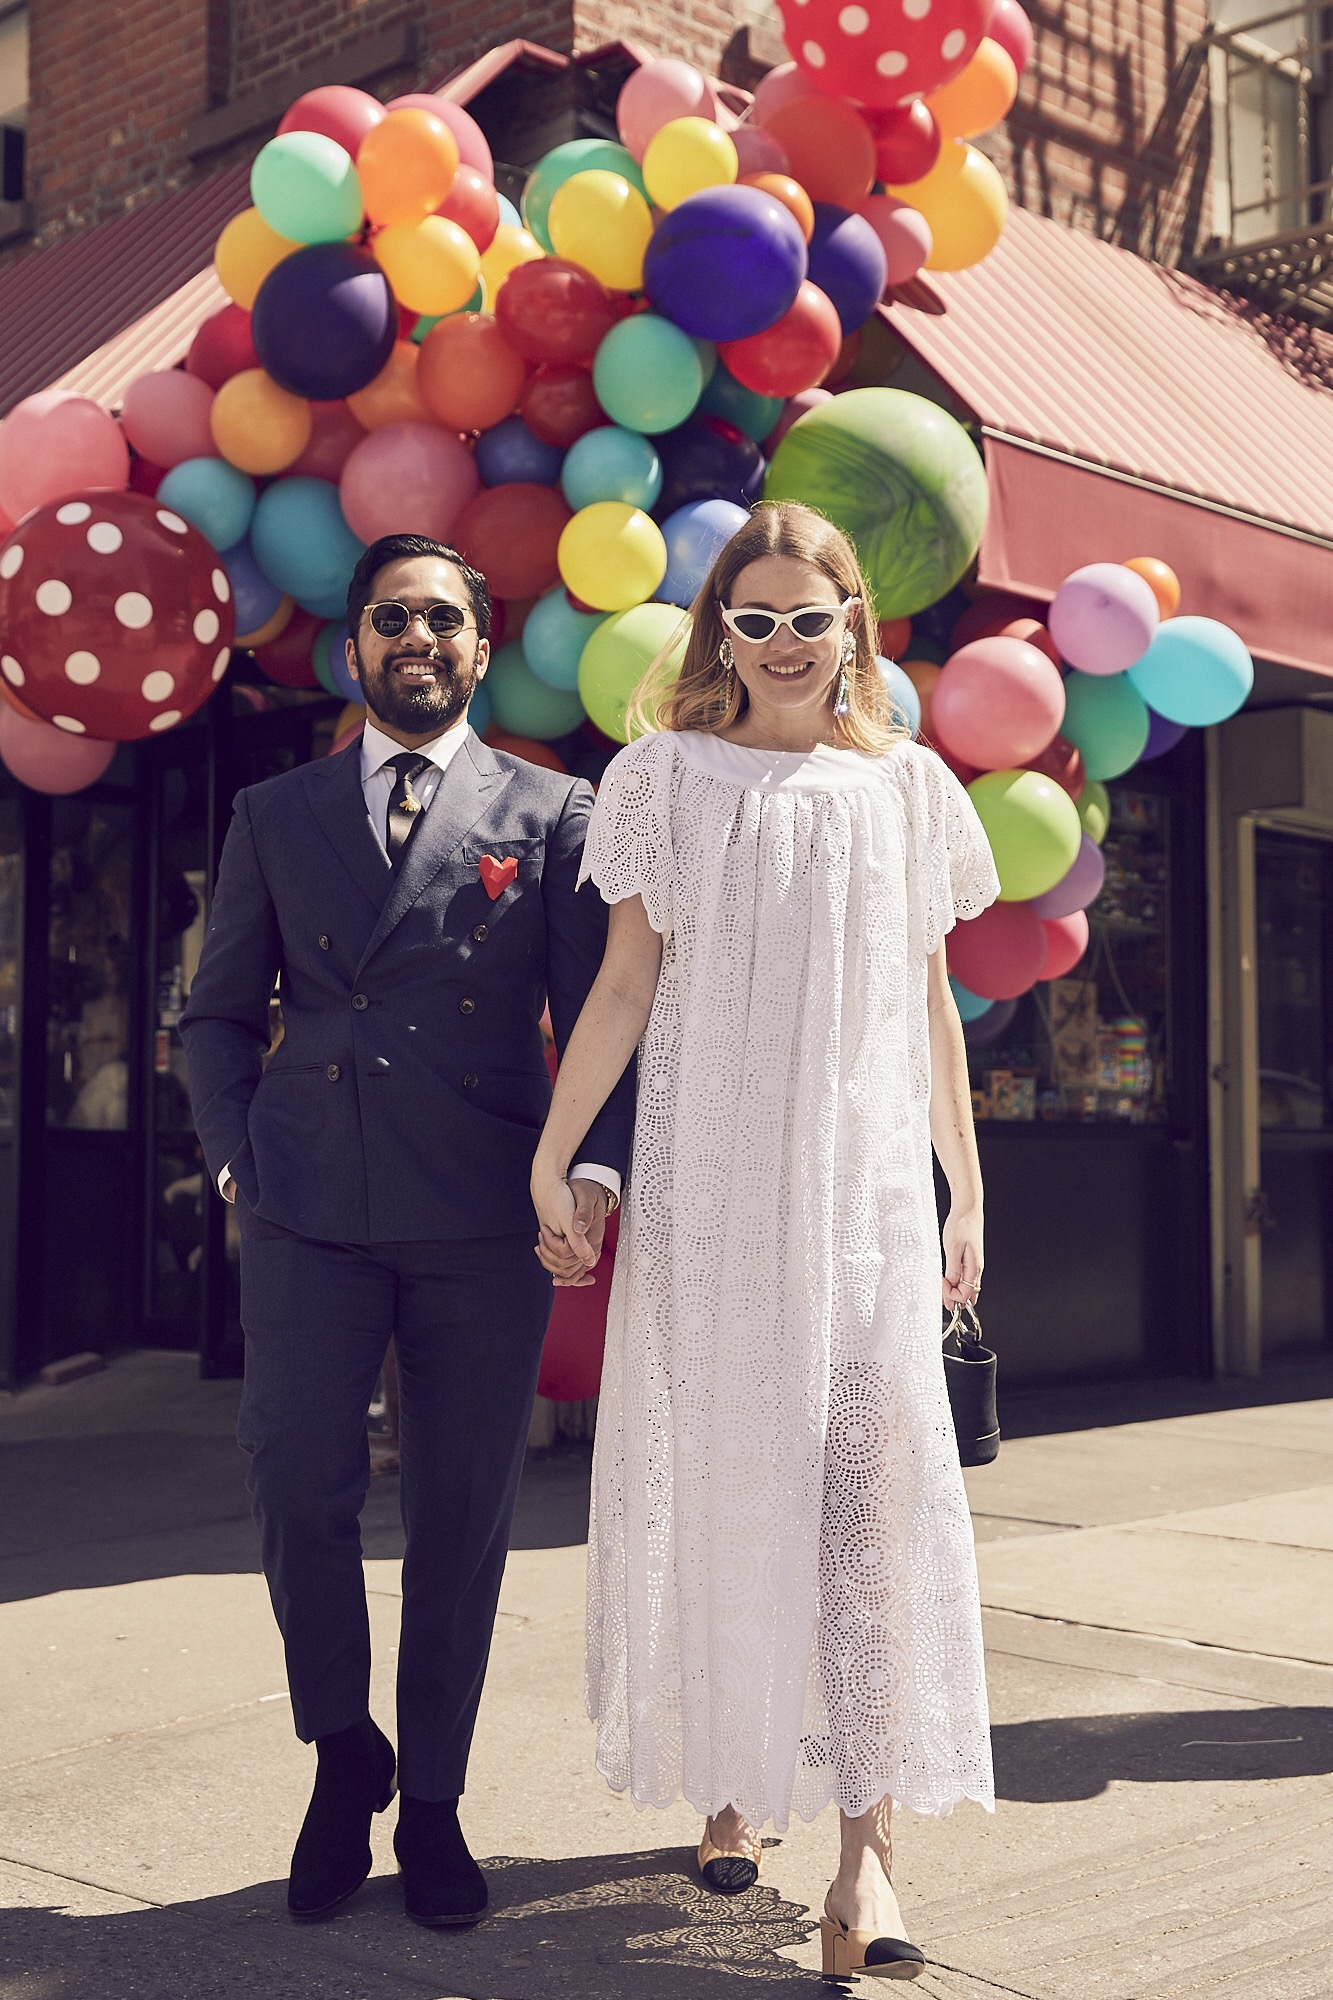 Dress,  Allison Fry . Handbag,  Simon Miller.  Shoes,  Chanel . Sunglasses,  Le Specs by Adam Selman . Earrings,  Alessandra Rich .  Bibhu wears    Suit by  J.Crew . Tie by  Gucci . Sunglasses,  Gucci . Boots,  Saint Laurent .